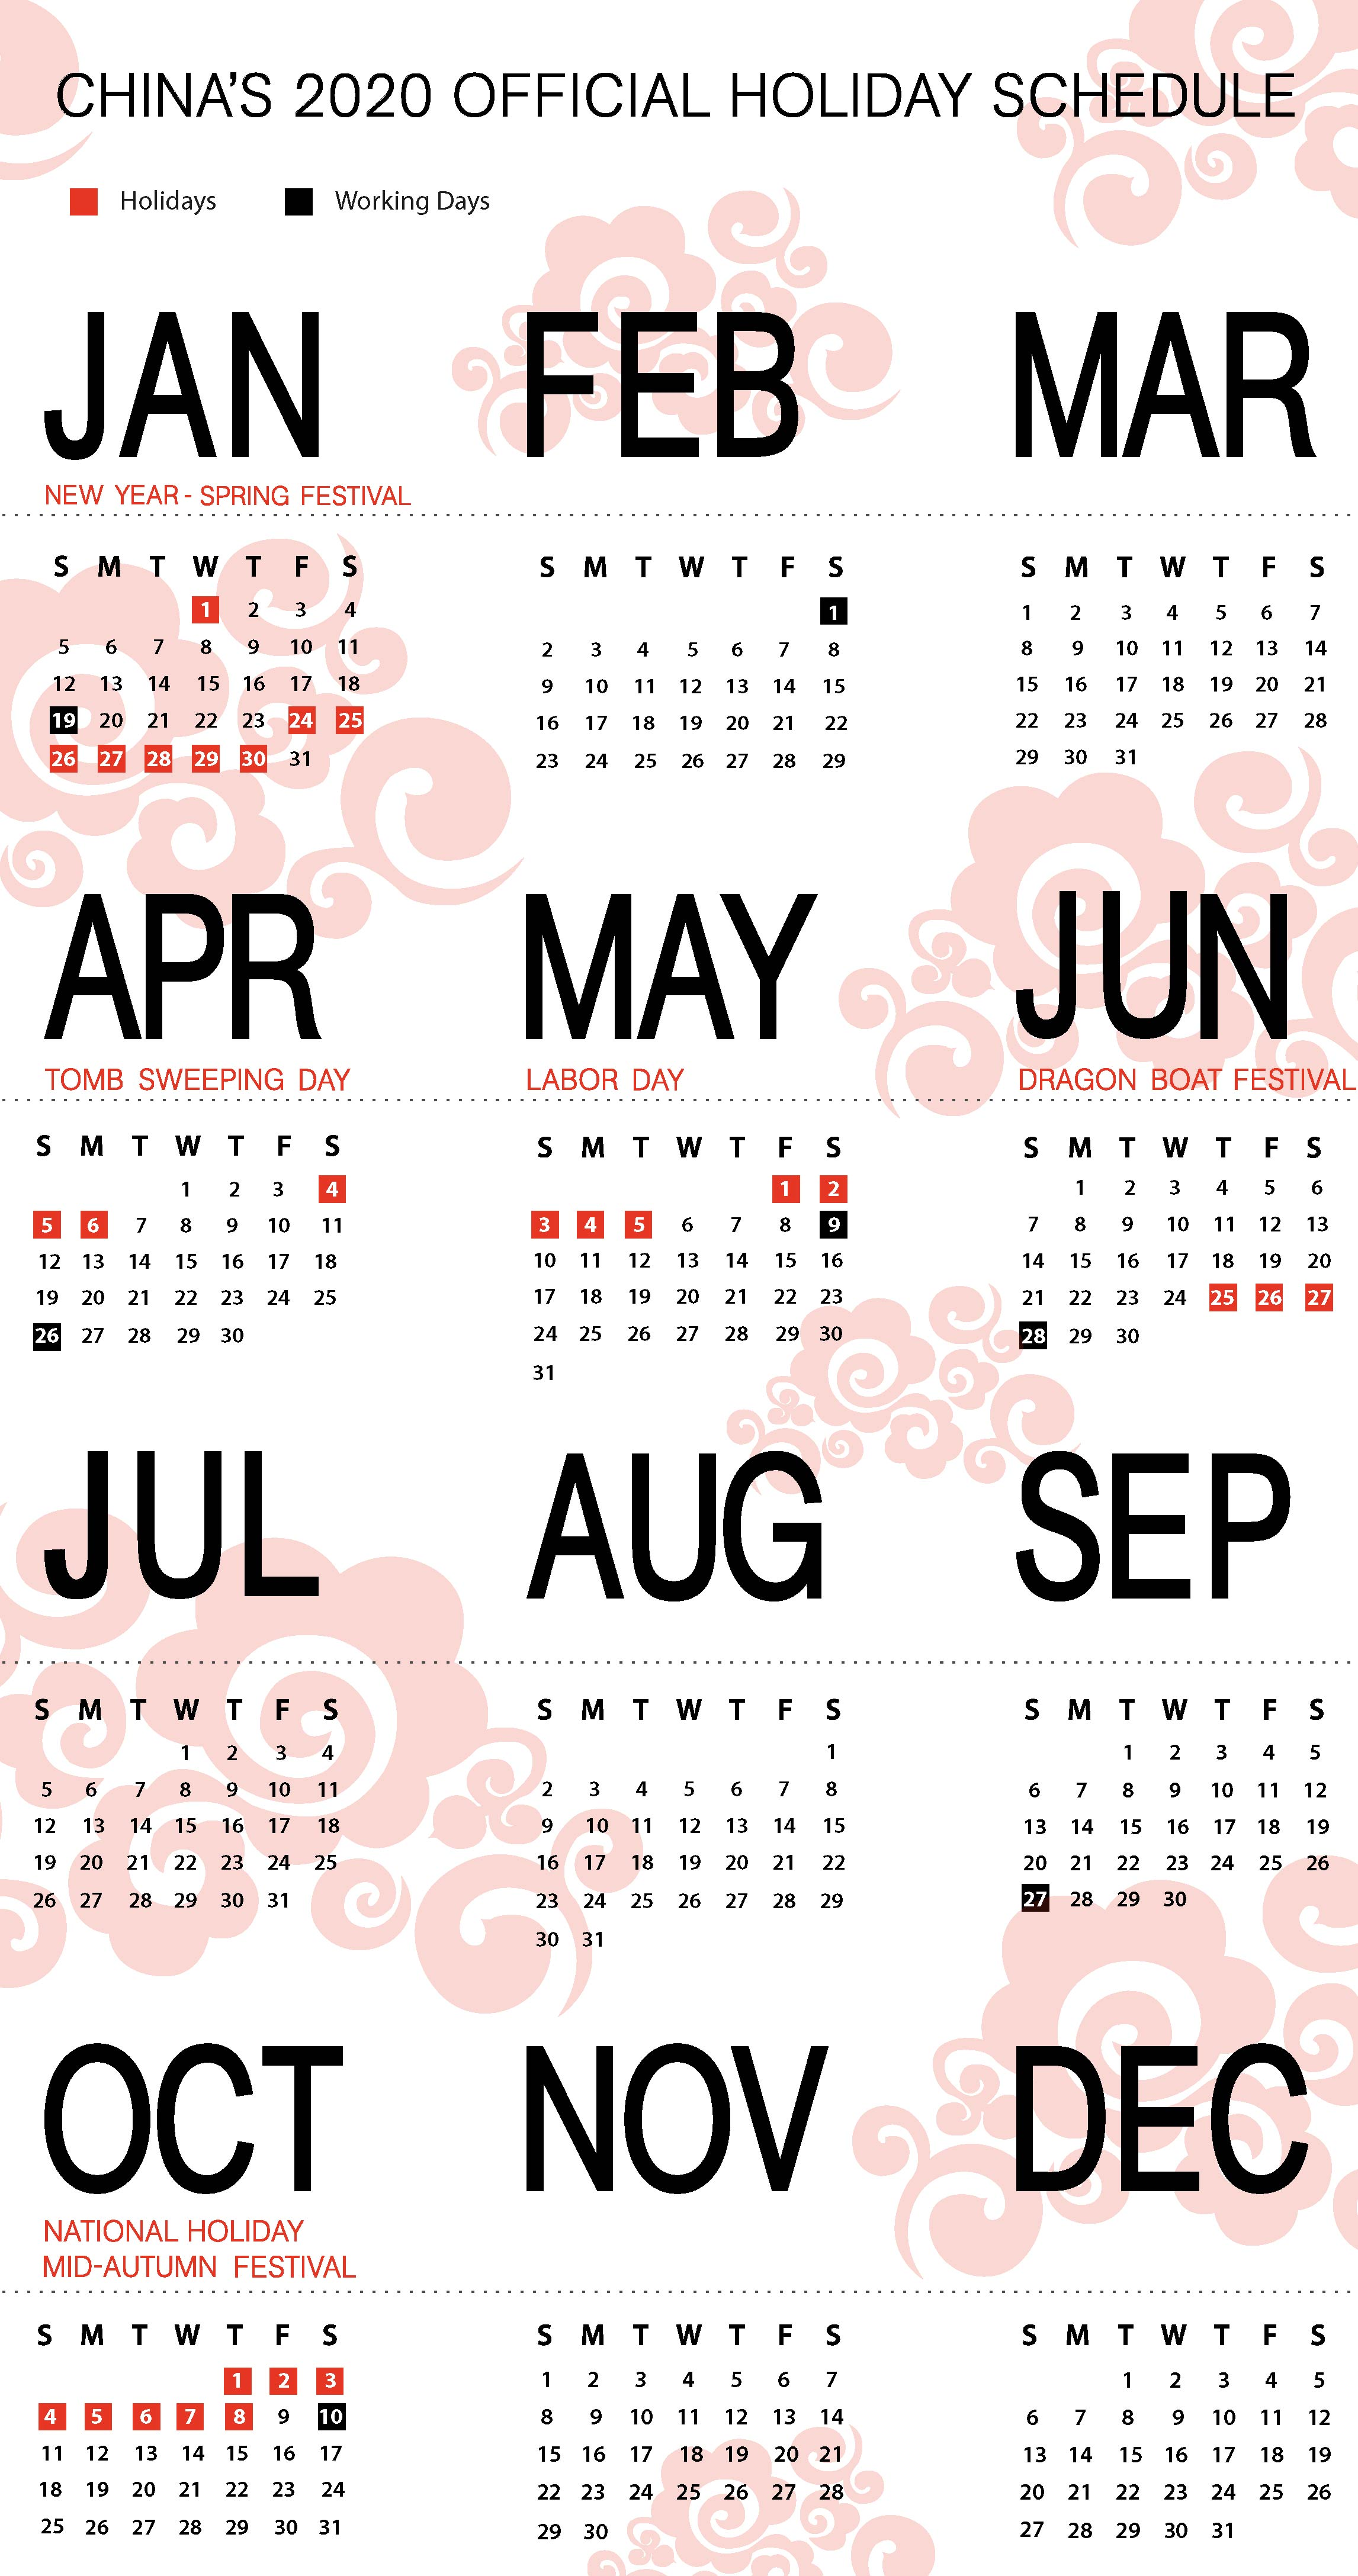 4 Days On 3 Days Off Work Schedule china's 2020 holiday schedule released - china briefing news